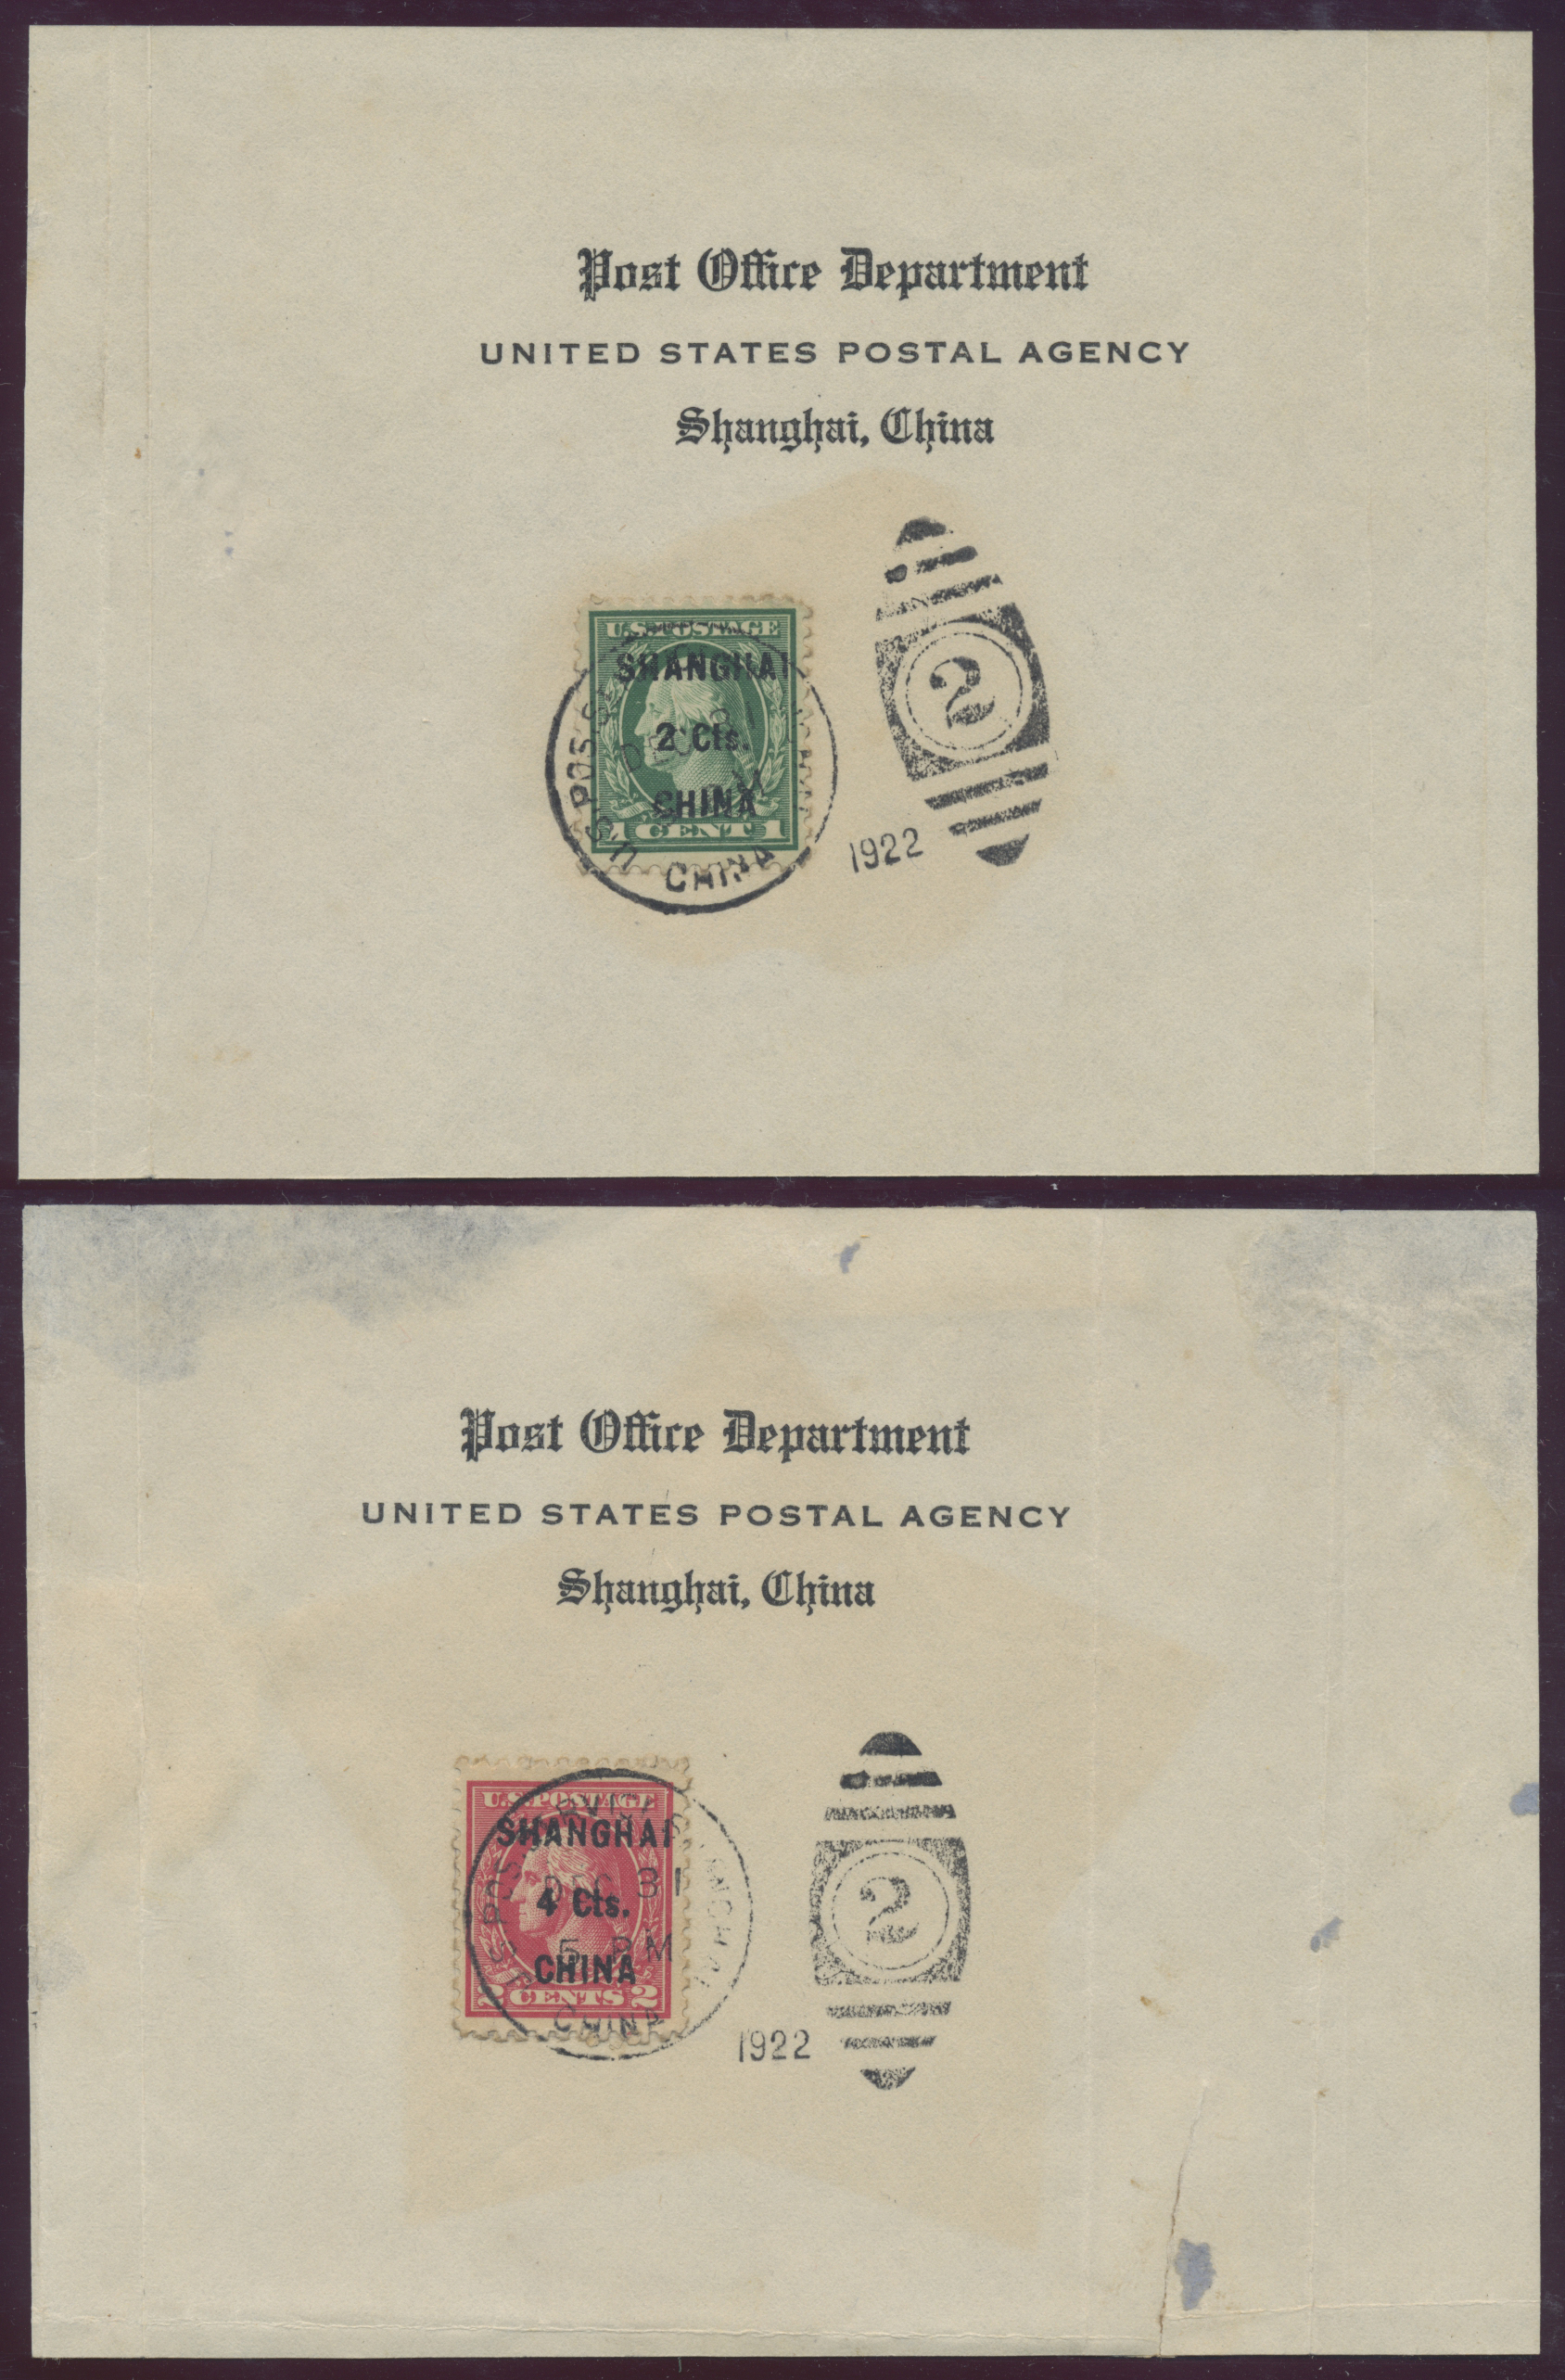 Lot 24474 - China - Fremde Postanstalten / Foreign Offices  -  Auktionshaus Christoph Gärtner GmbH & Co. KG Sale #45Collections Worldwide